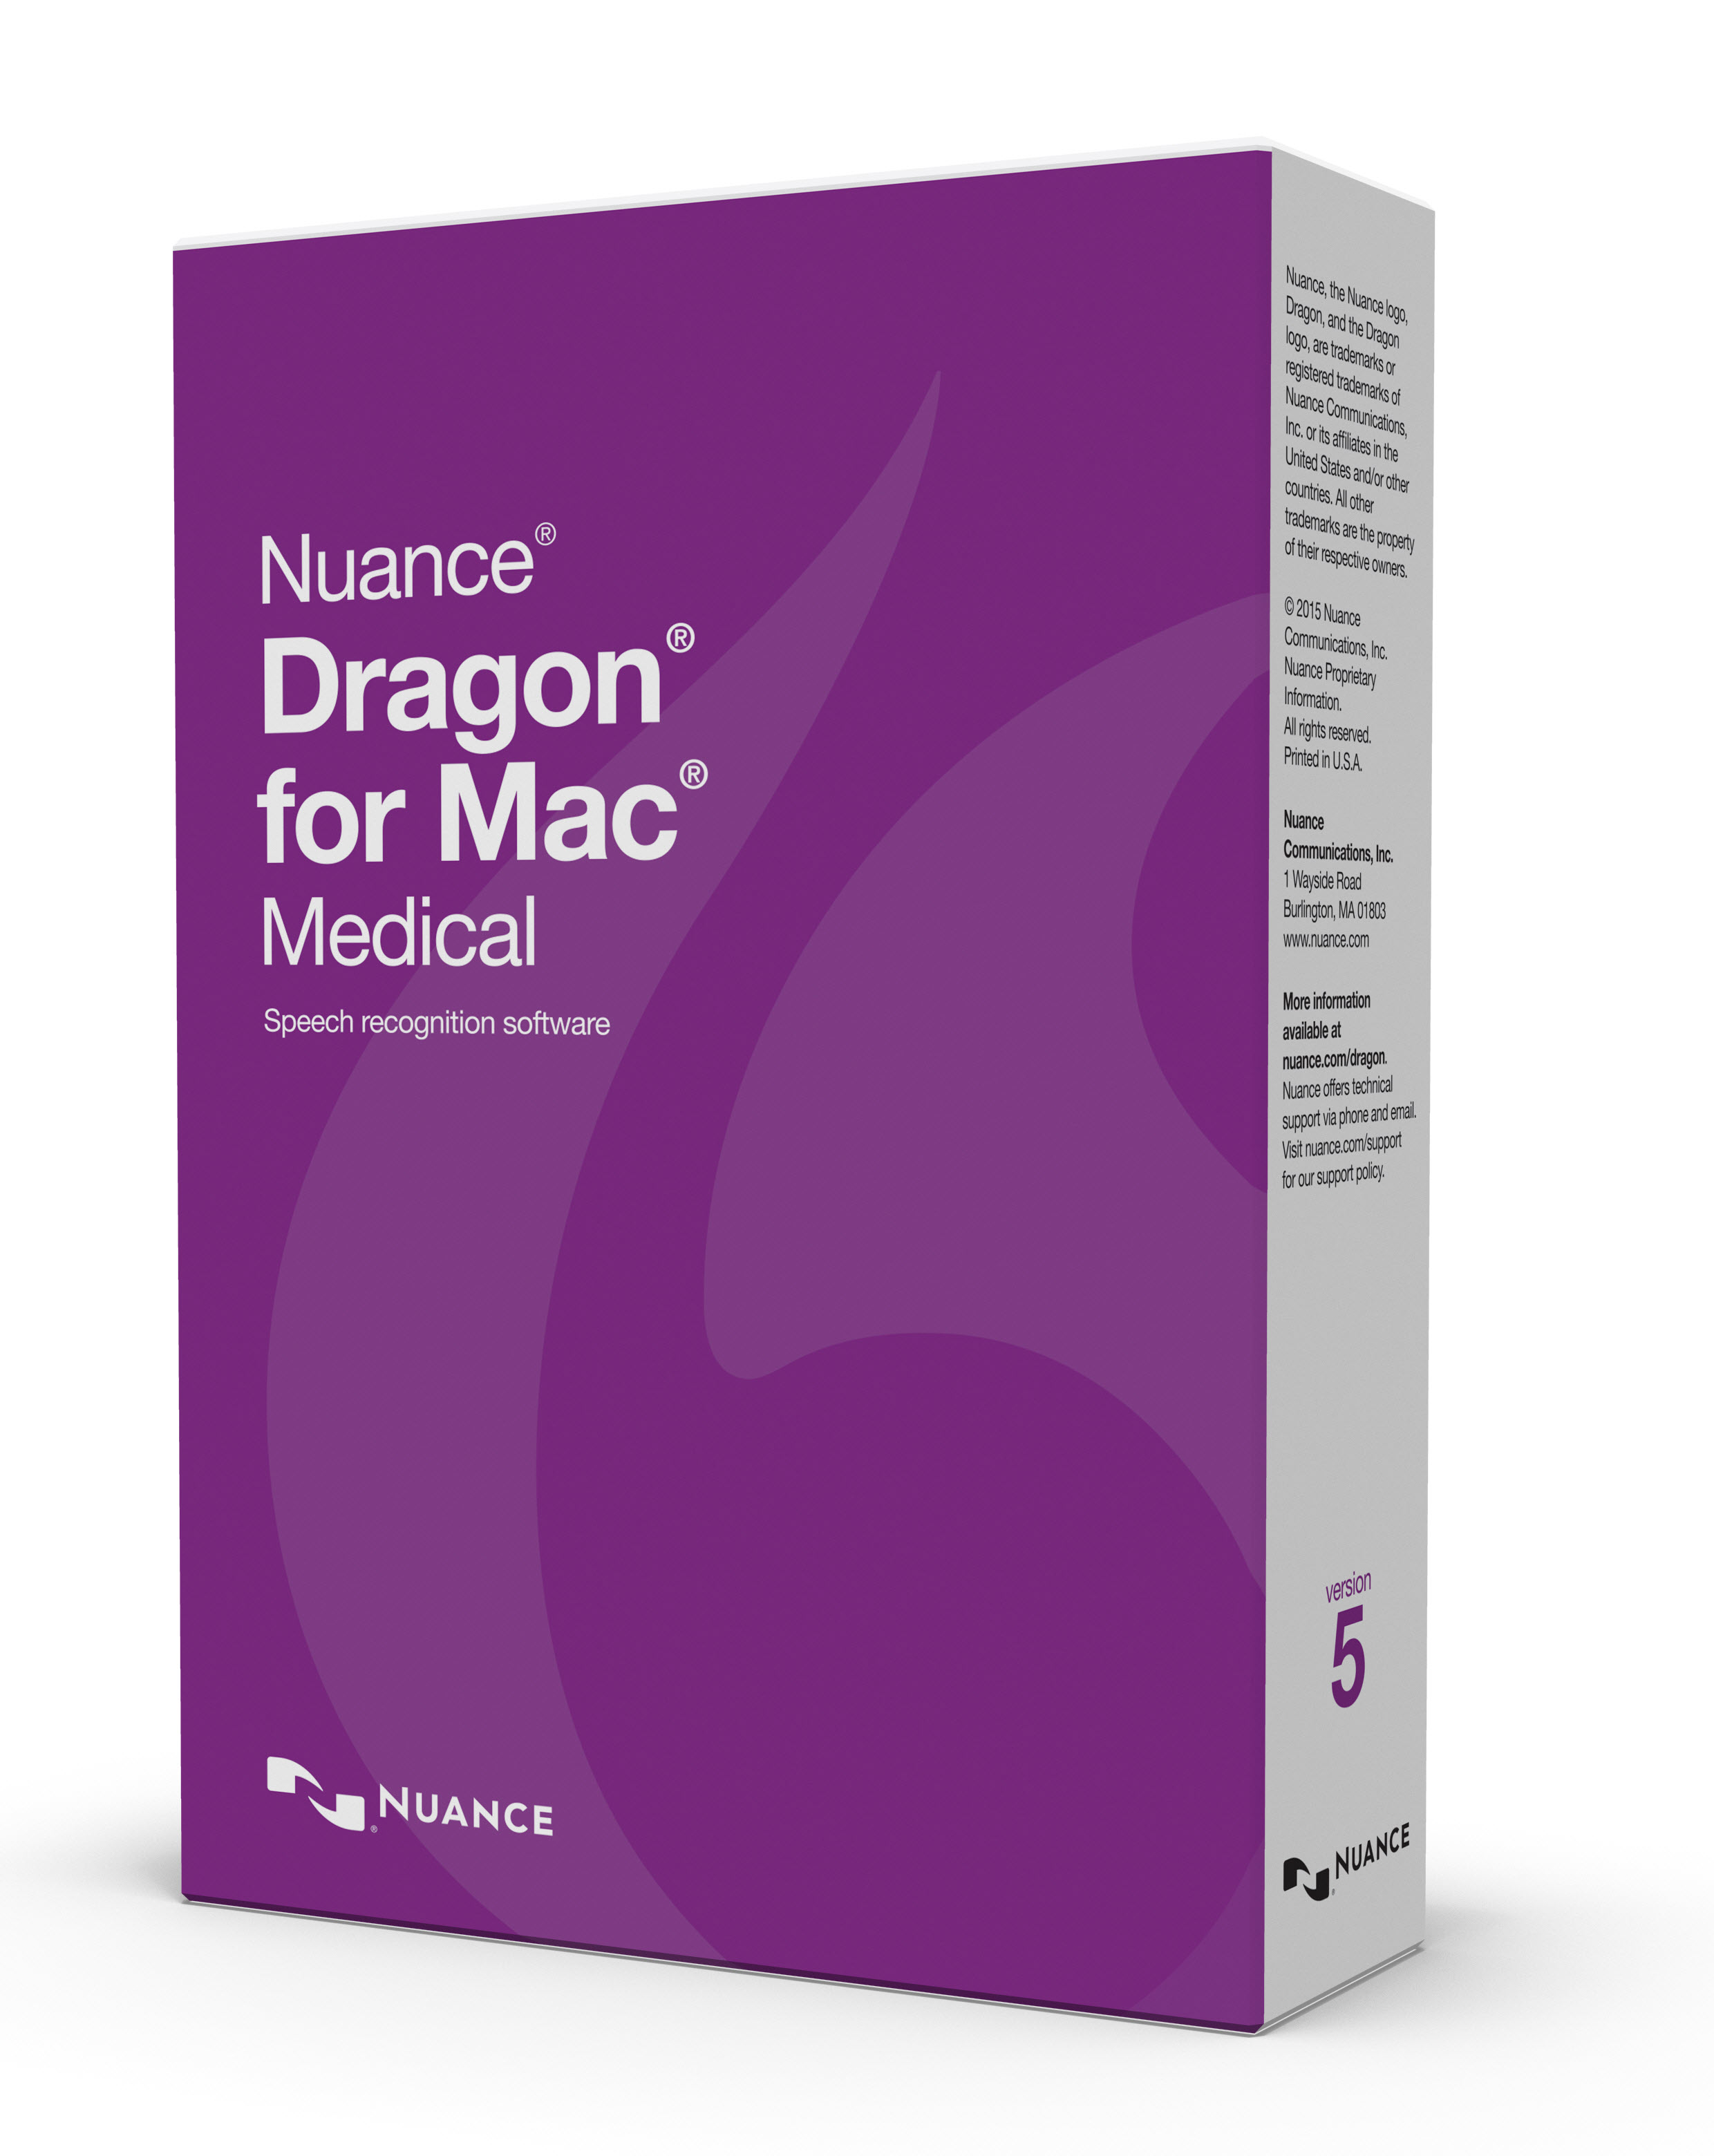 How to Download and Install Updates for Dragon for Mac 5